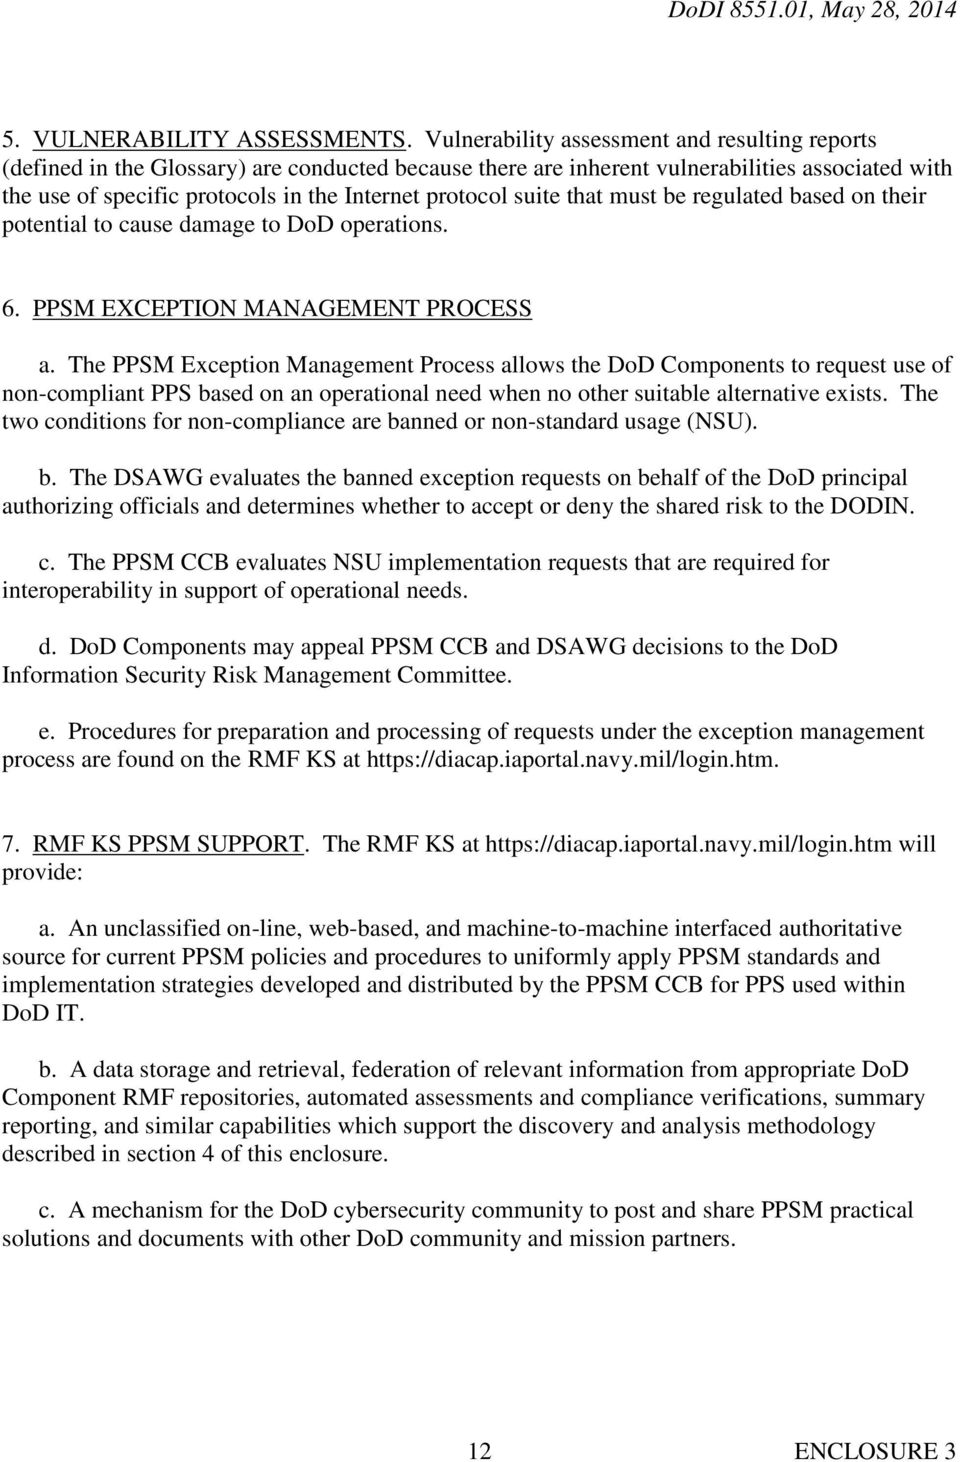 protocol suite that must be regulated based on their potential to cause damage to DoD operations. 6. PPSM EXCEPTION MANAGEMENT PROCESS a.